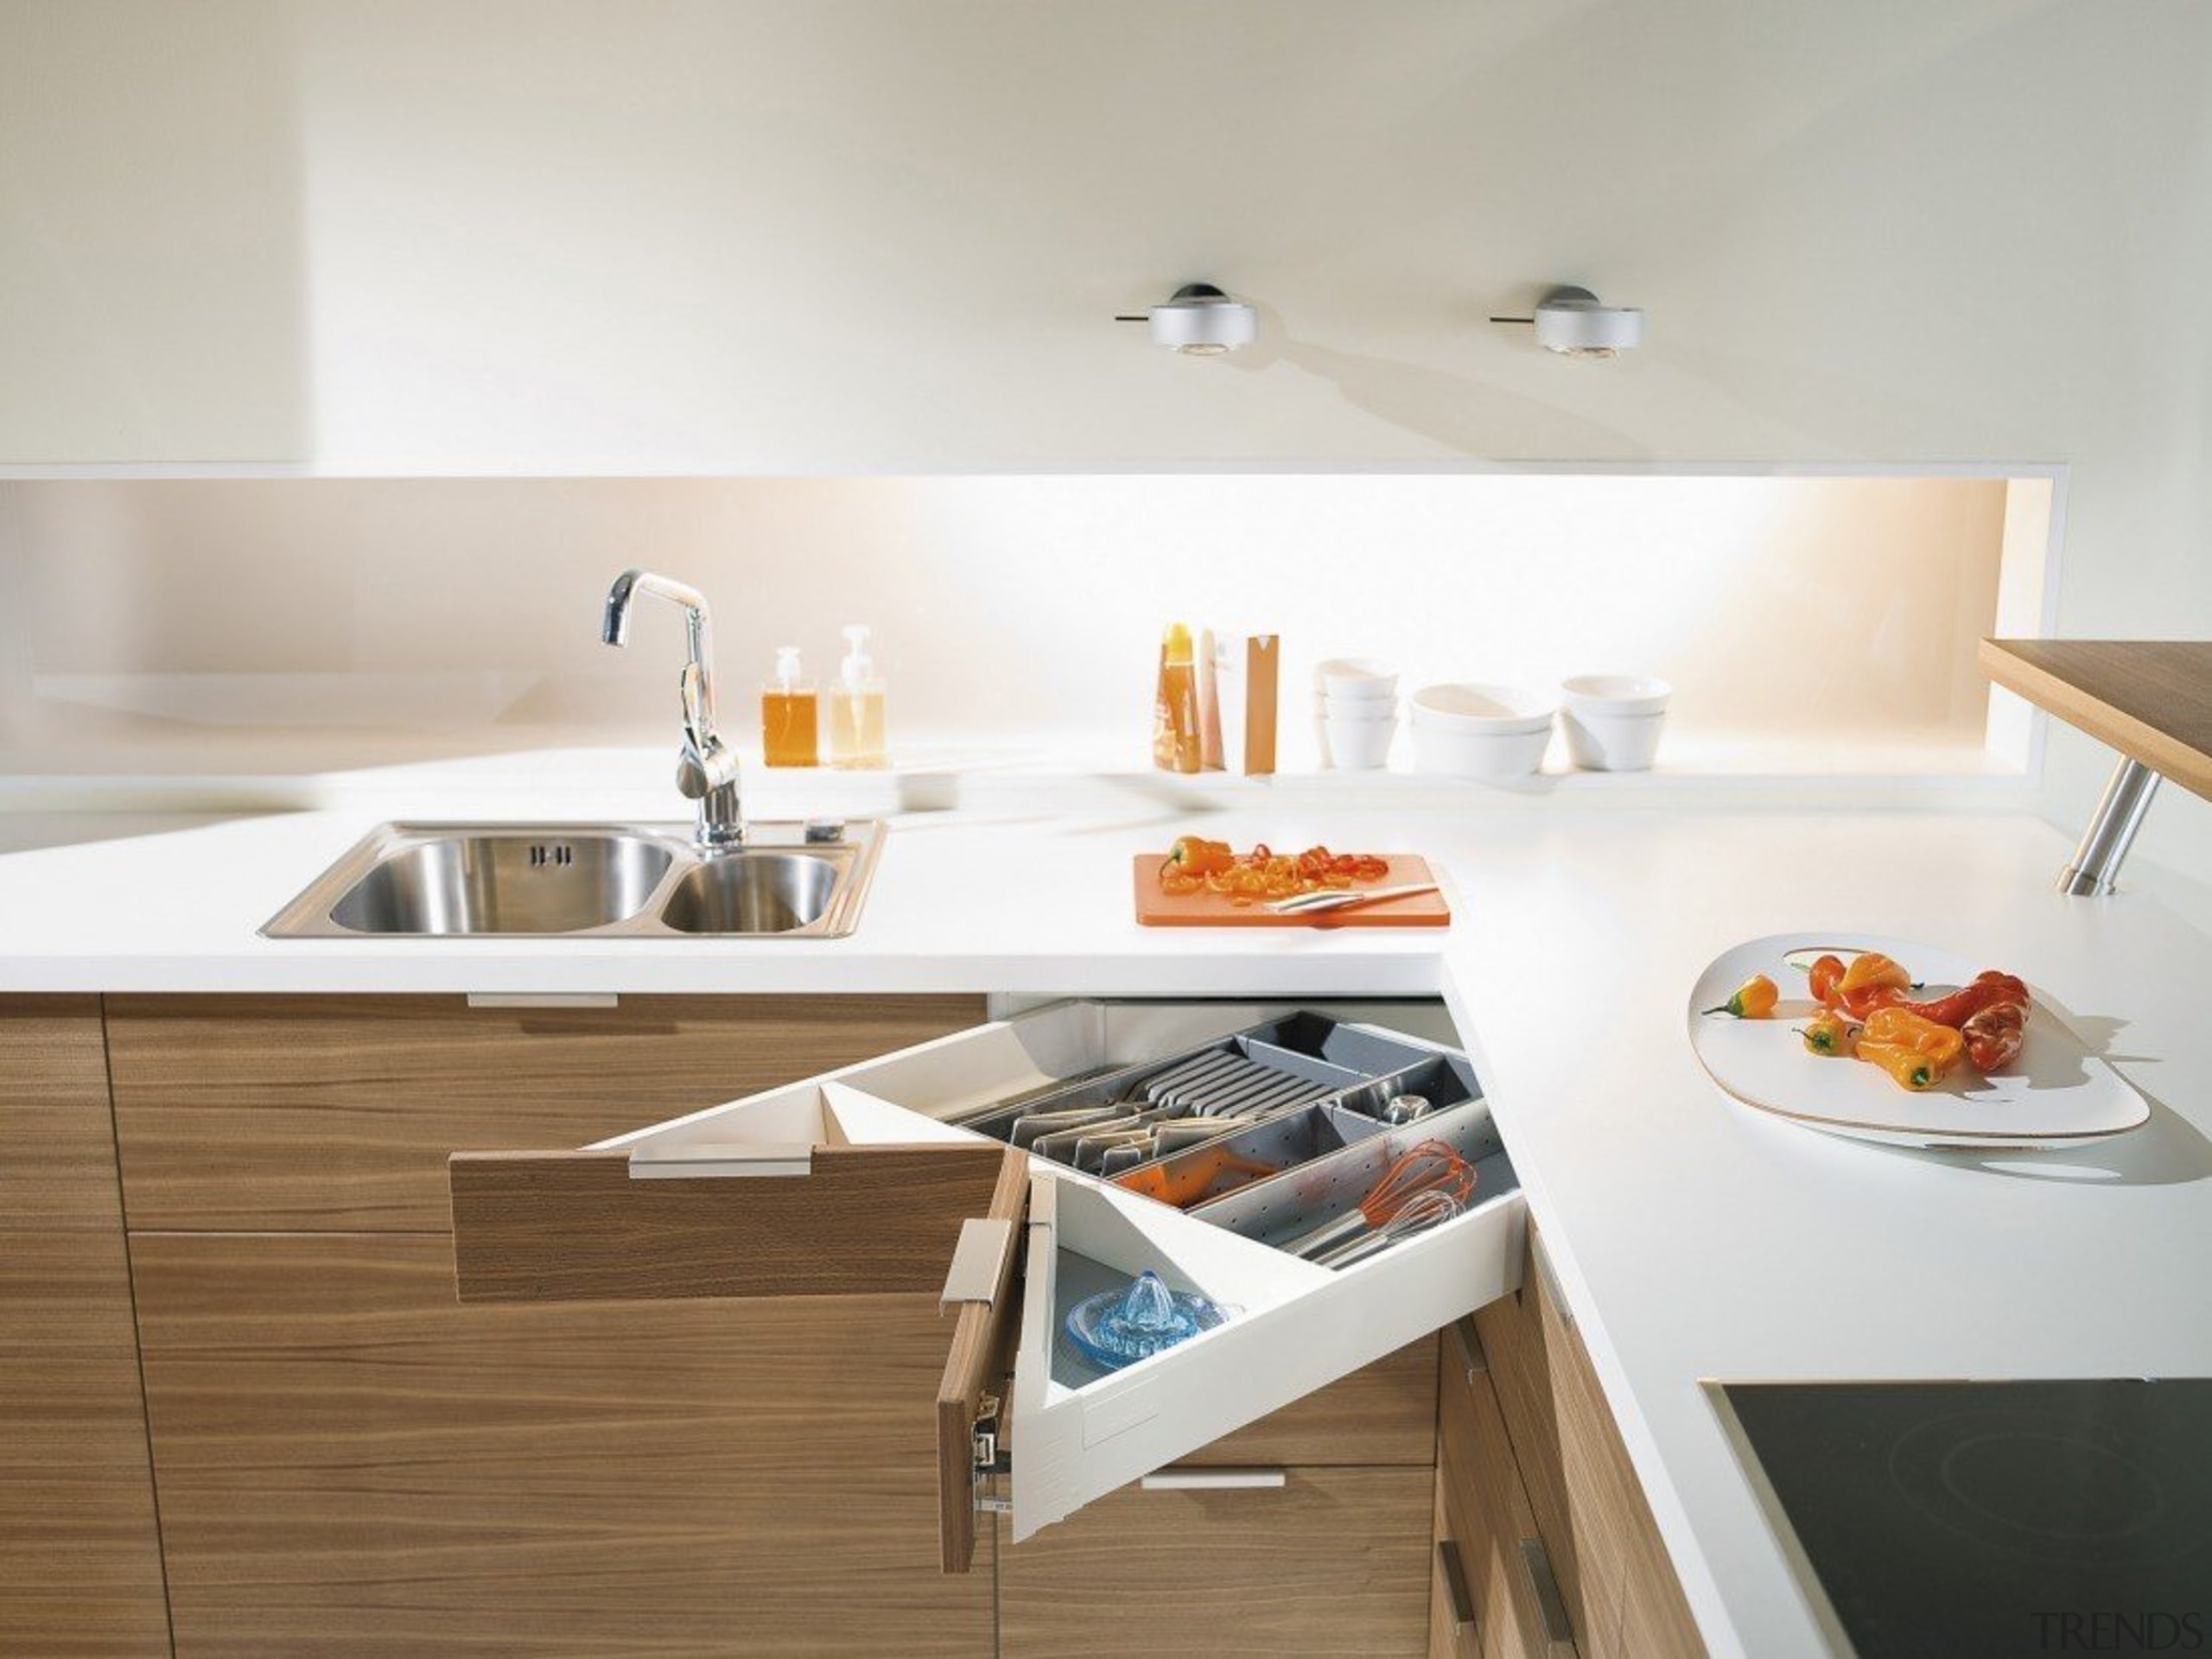 The SPACE CORNER gives you full extension drawers countertop, furniture, interior design, kitchen, sink, table, tap, white